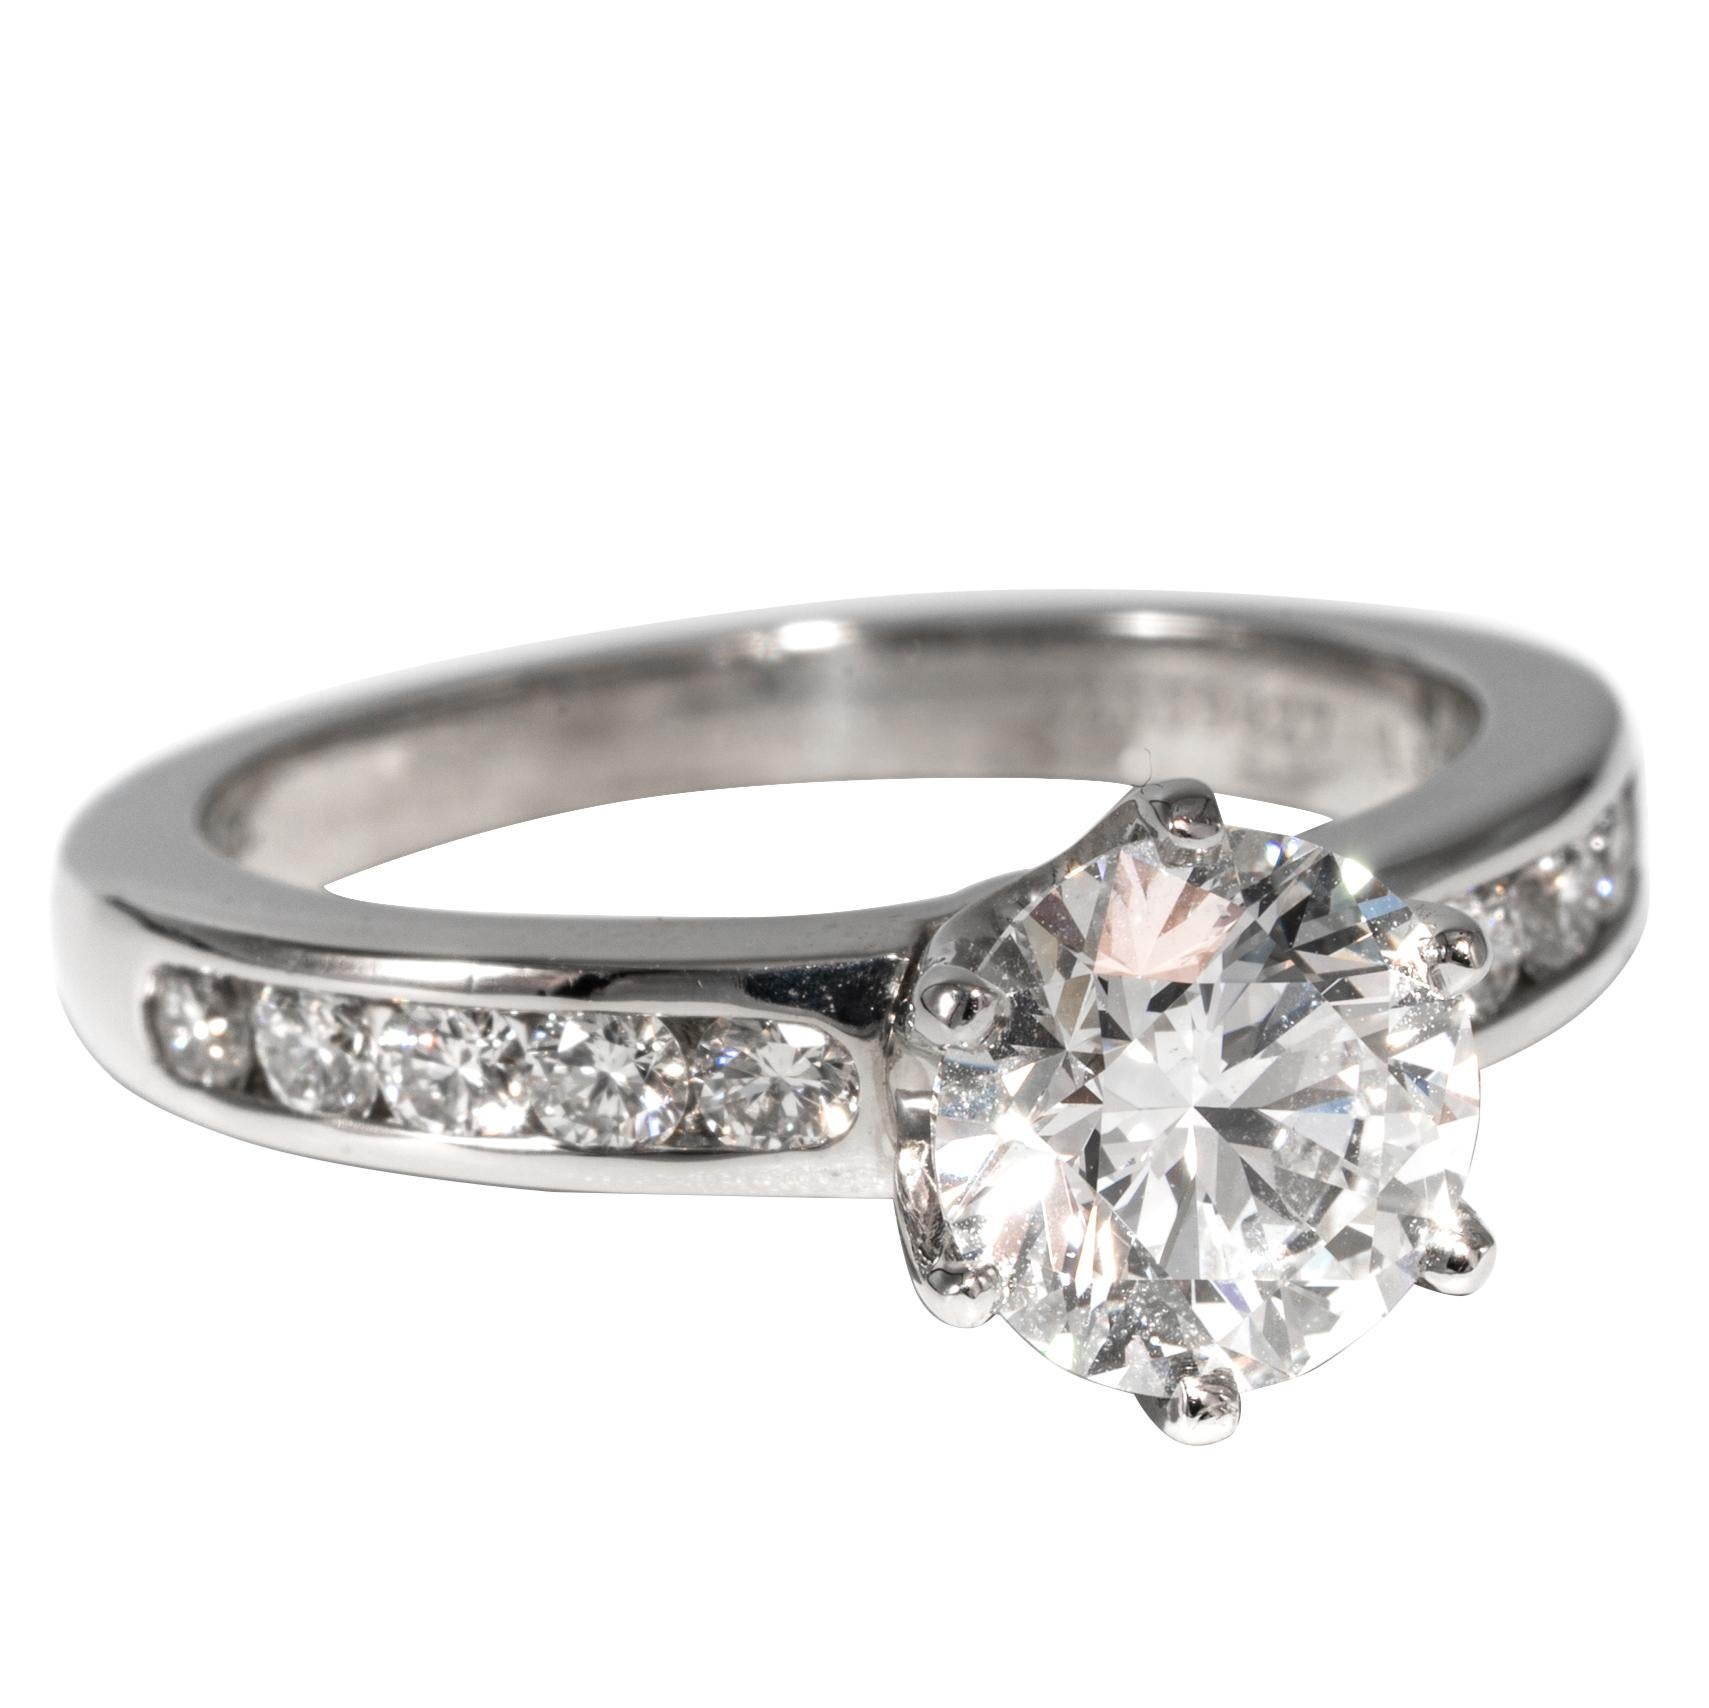 Tiffany Wedding Rings.Tiffany Co Engagement Ring With 1 43 Carat Round Brilliant Centre In Platinum